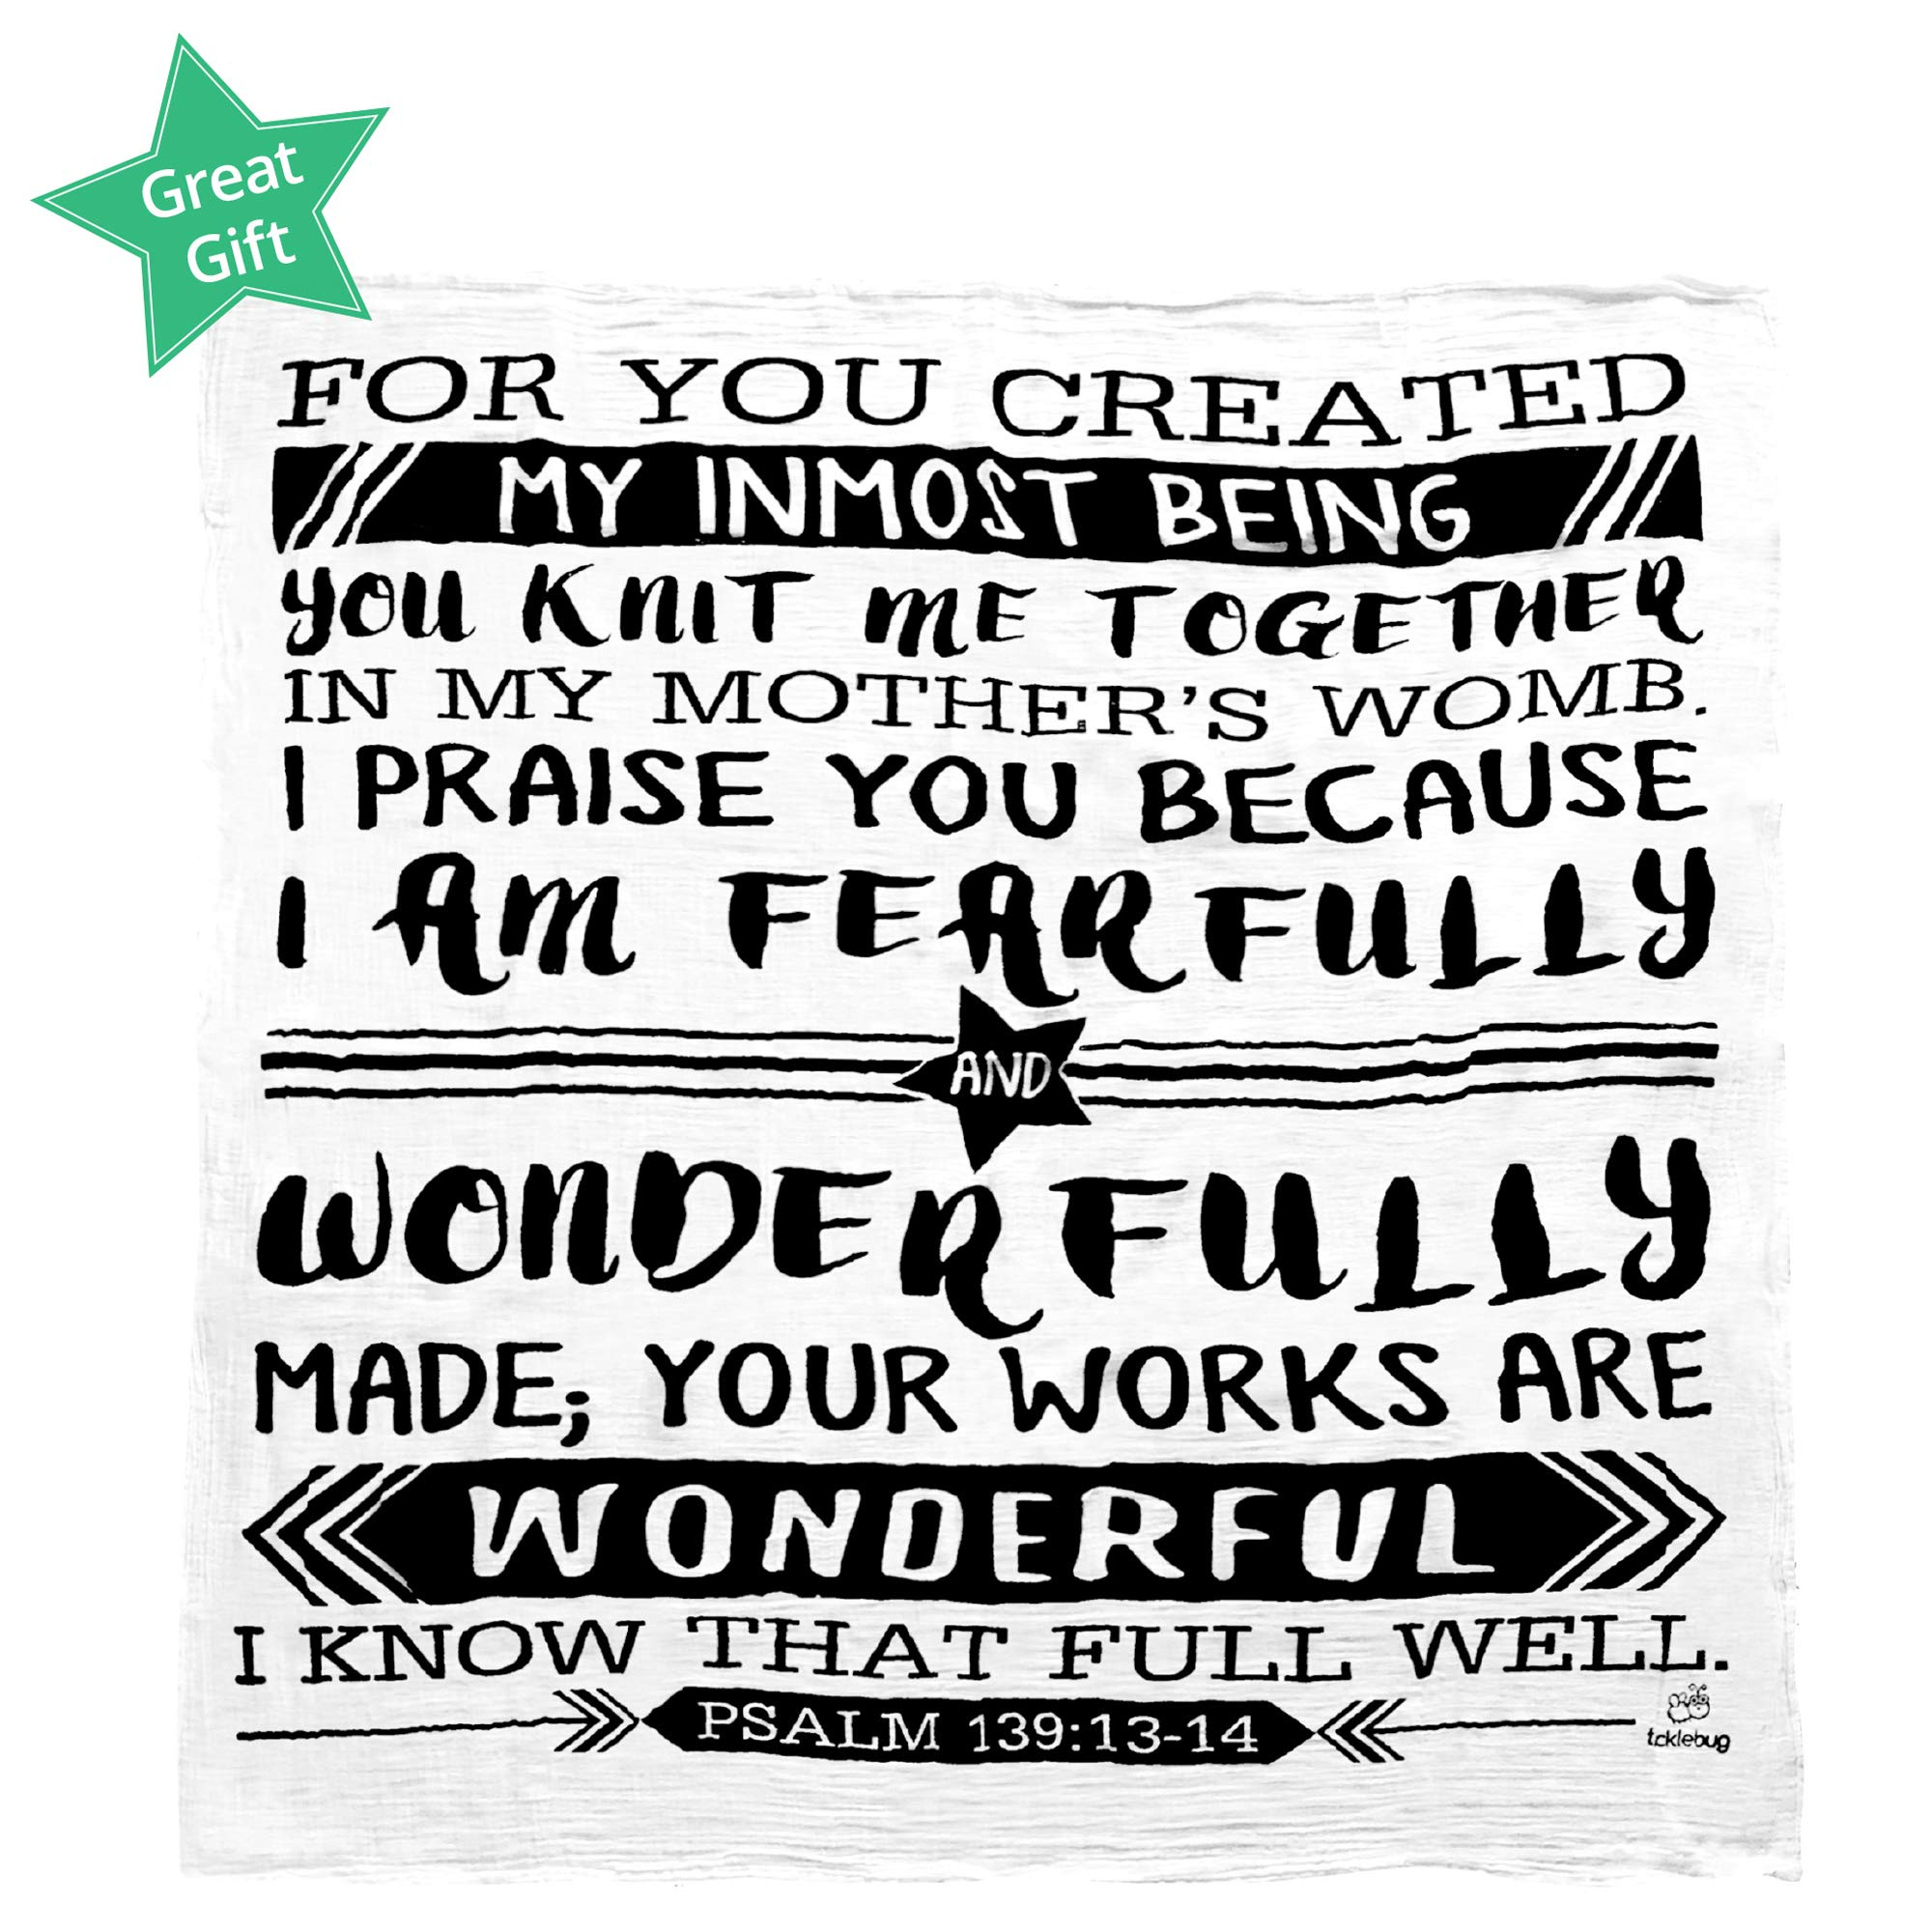 Muslin Swaddle Blanket for Baby | Perfect Baby Shower Gift | 100% Organic Cotton Boutique Quality Newborn Blanket | Psalm 139:13-14 by Fayfaire